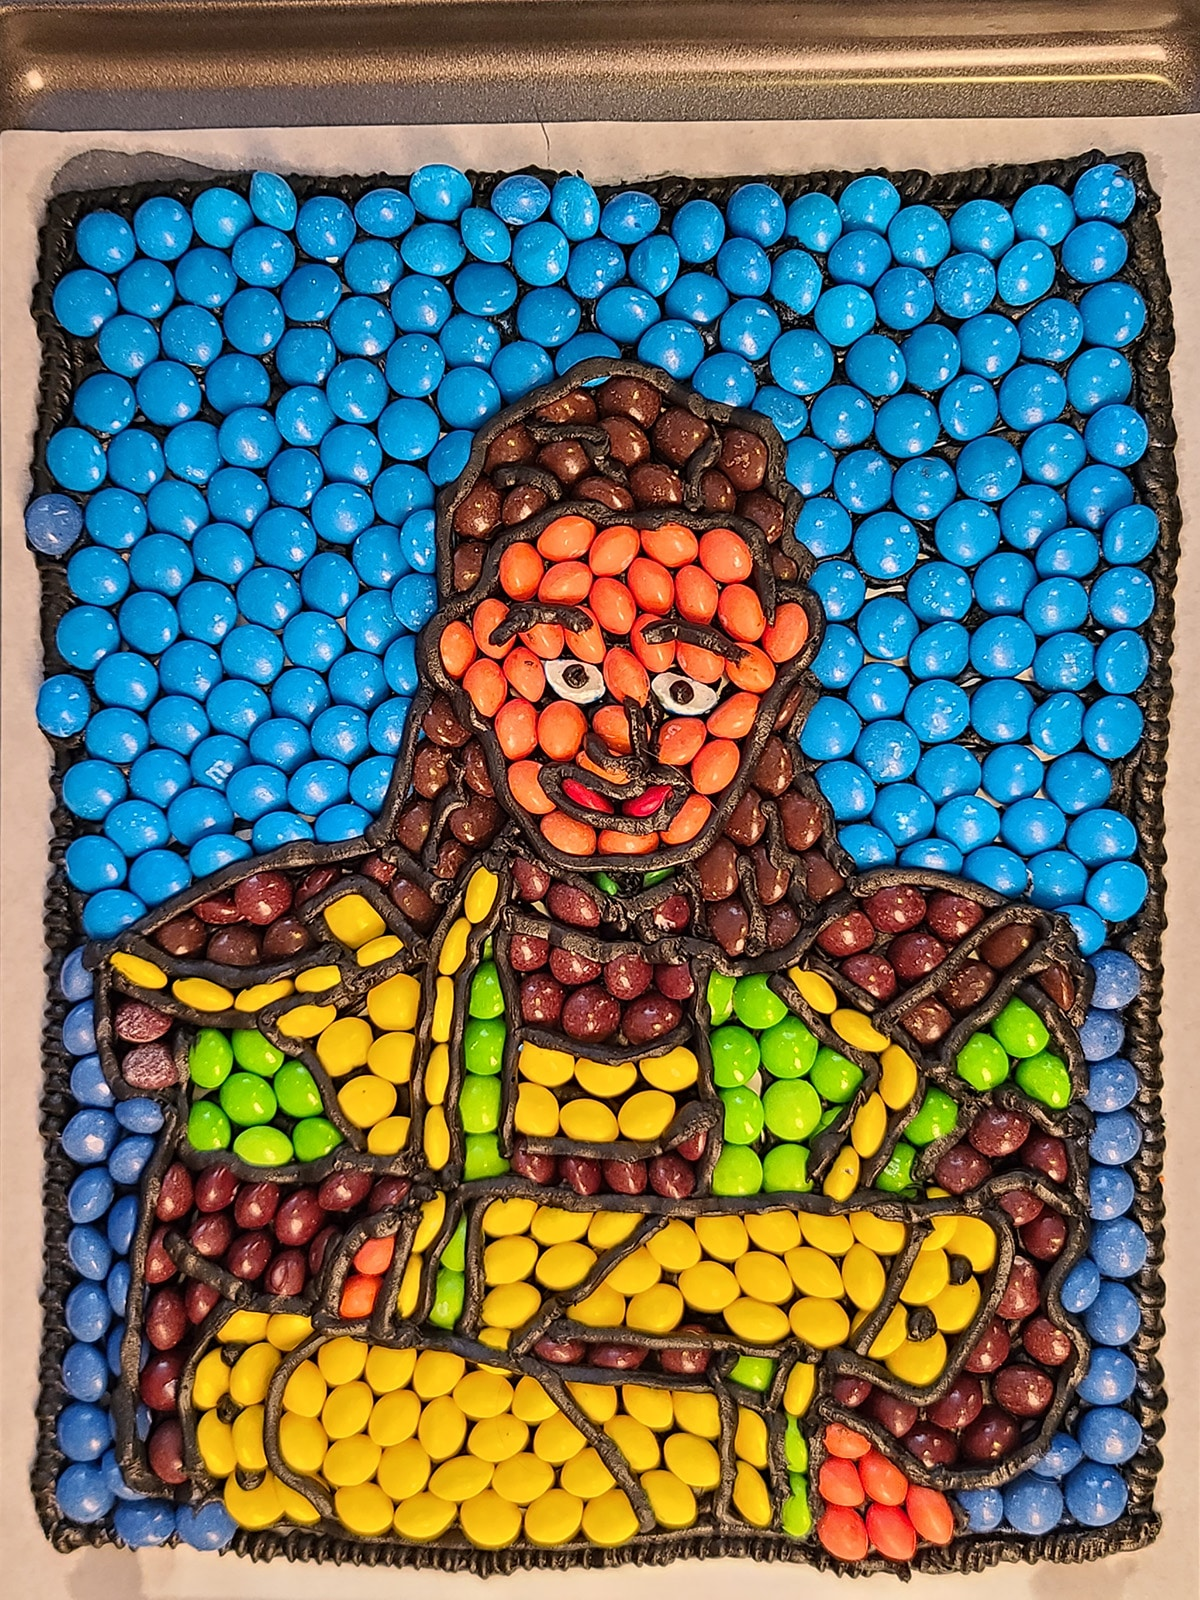 A picture of Loki, made from Skittles & M&Ms.